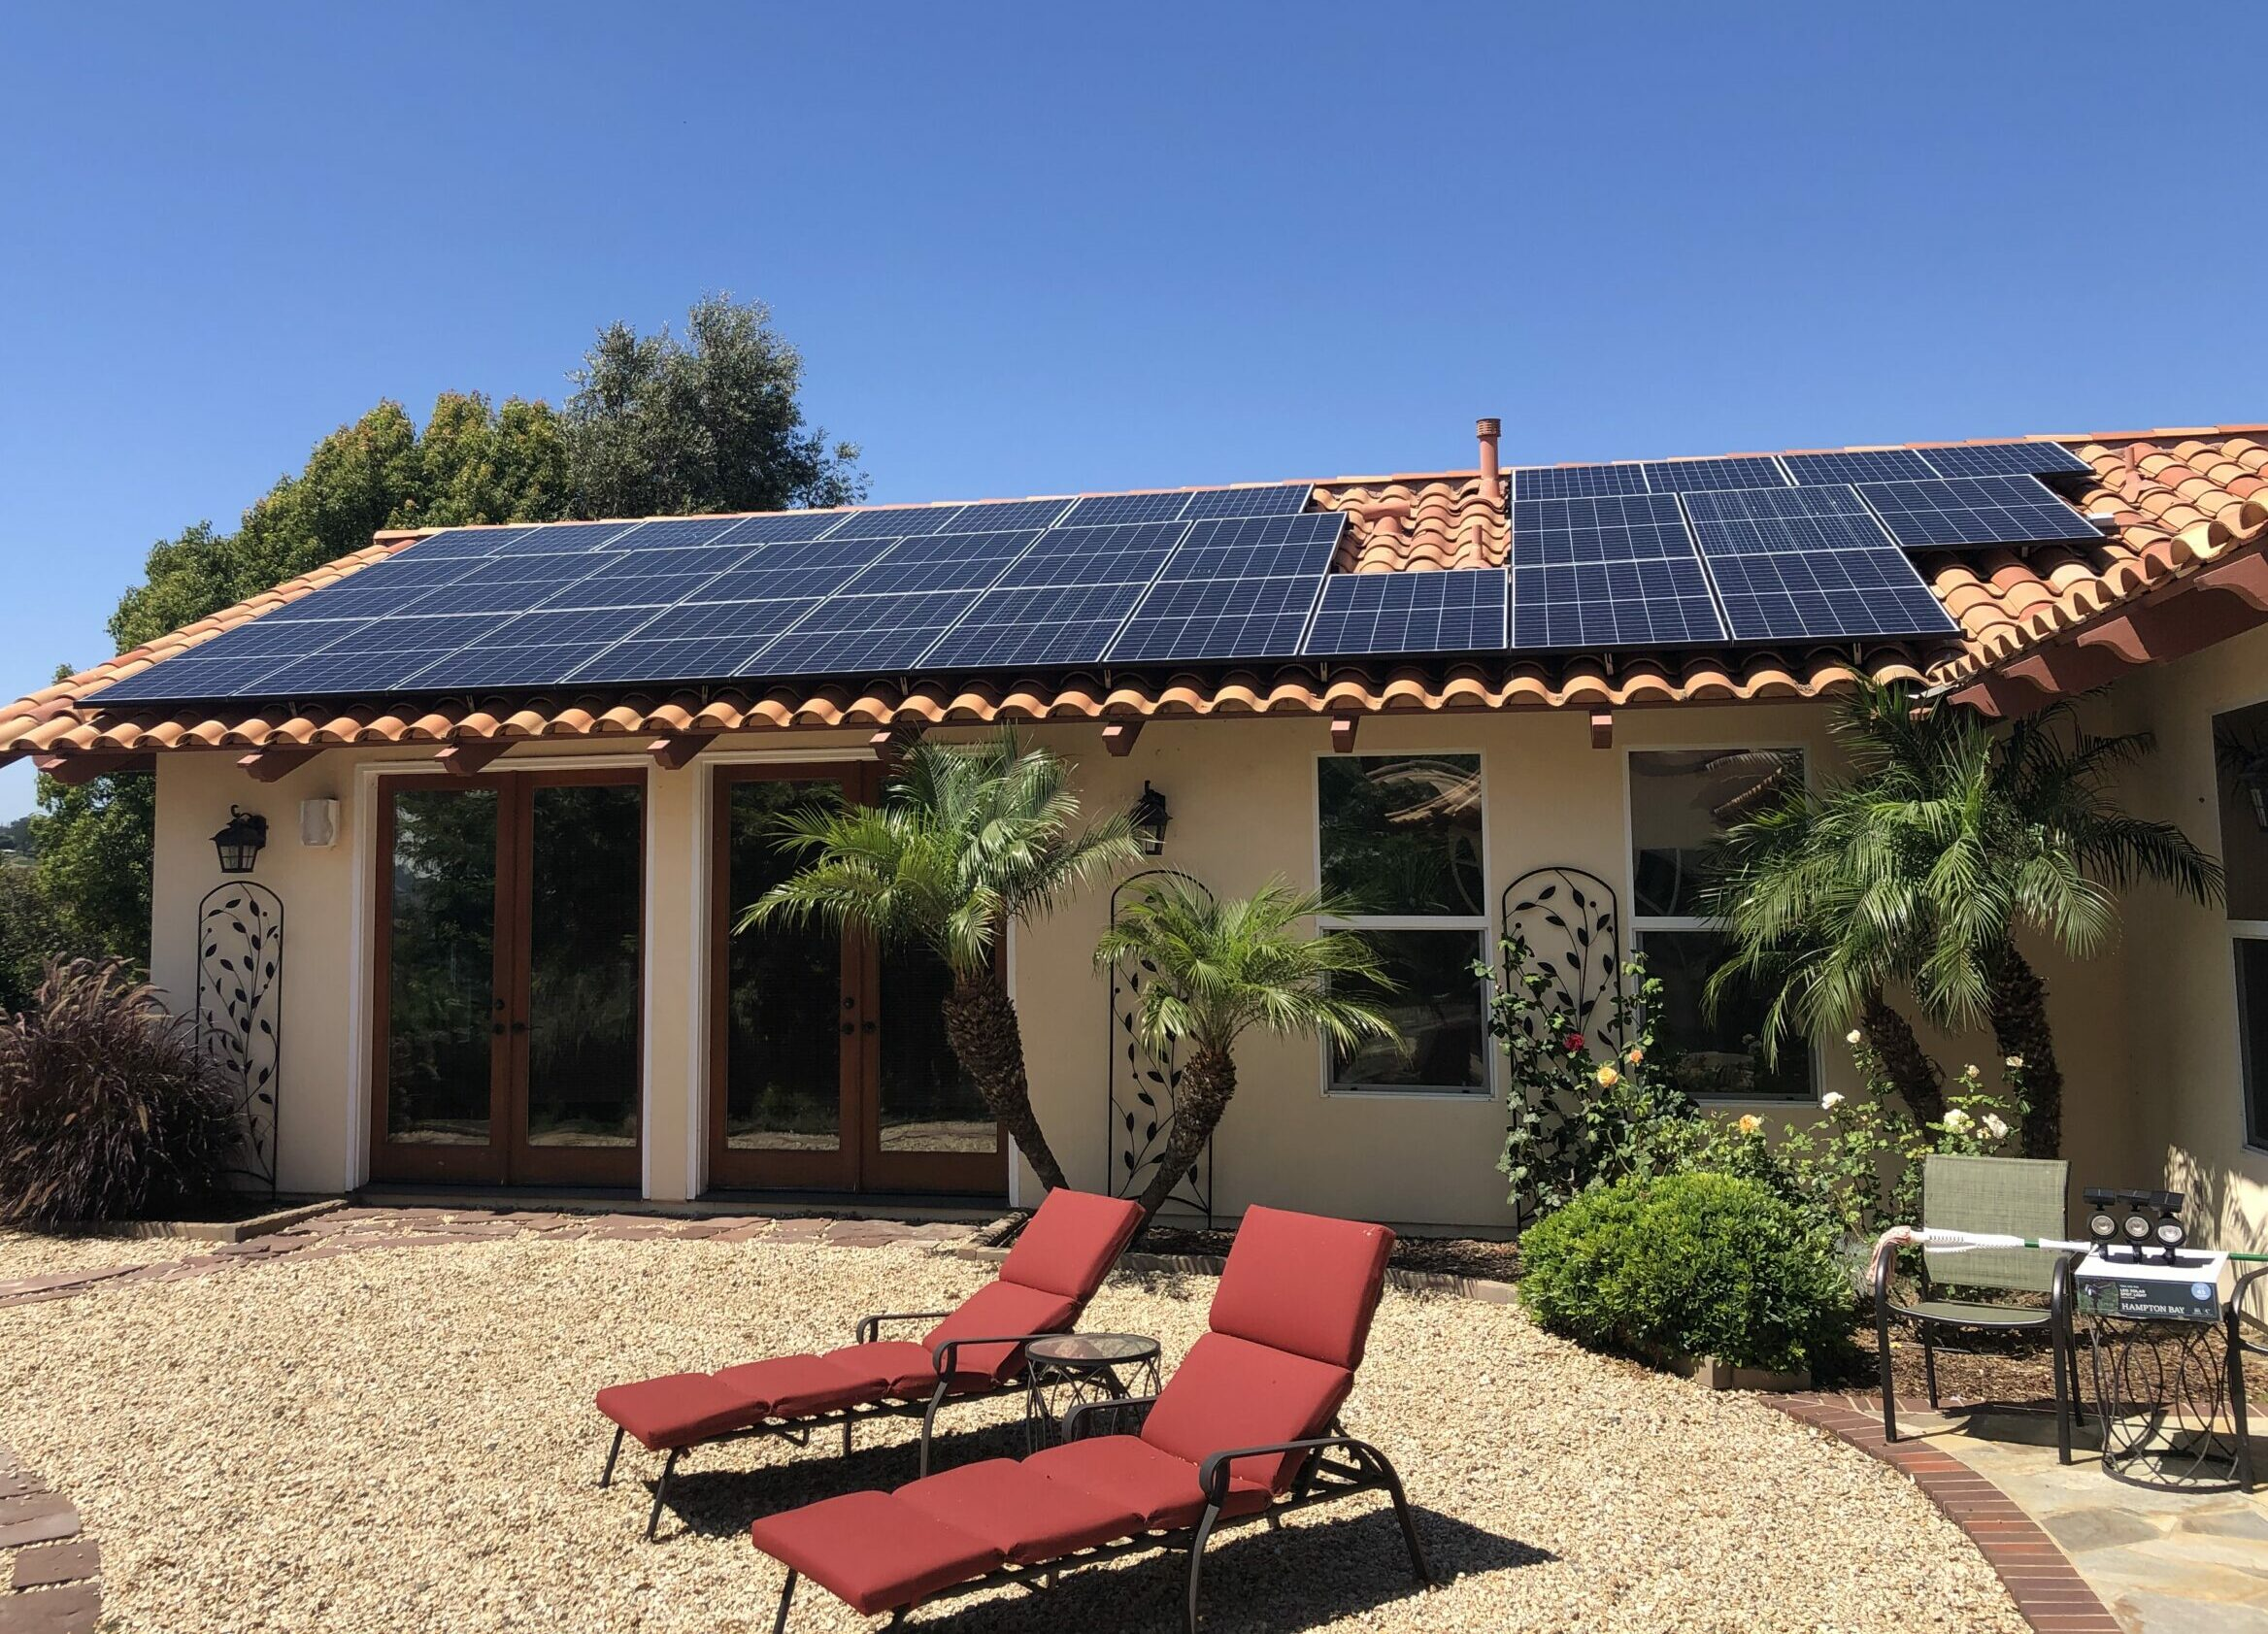 Solar incentives for homeowners in Southern California